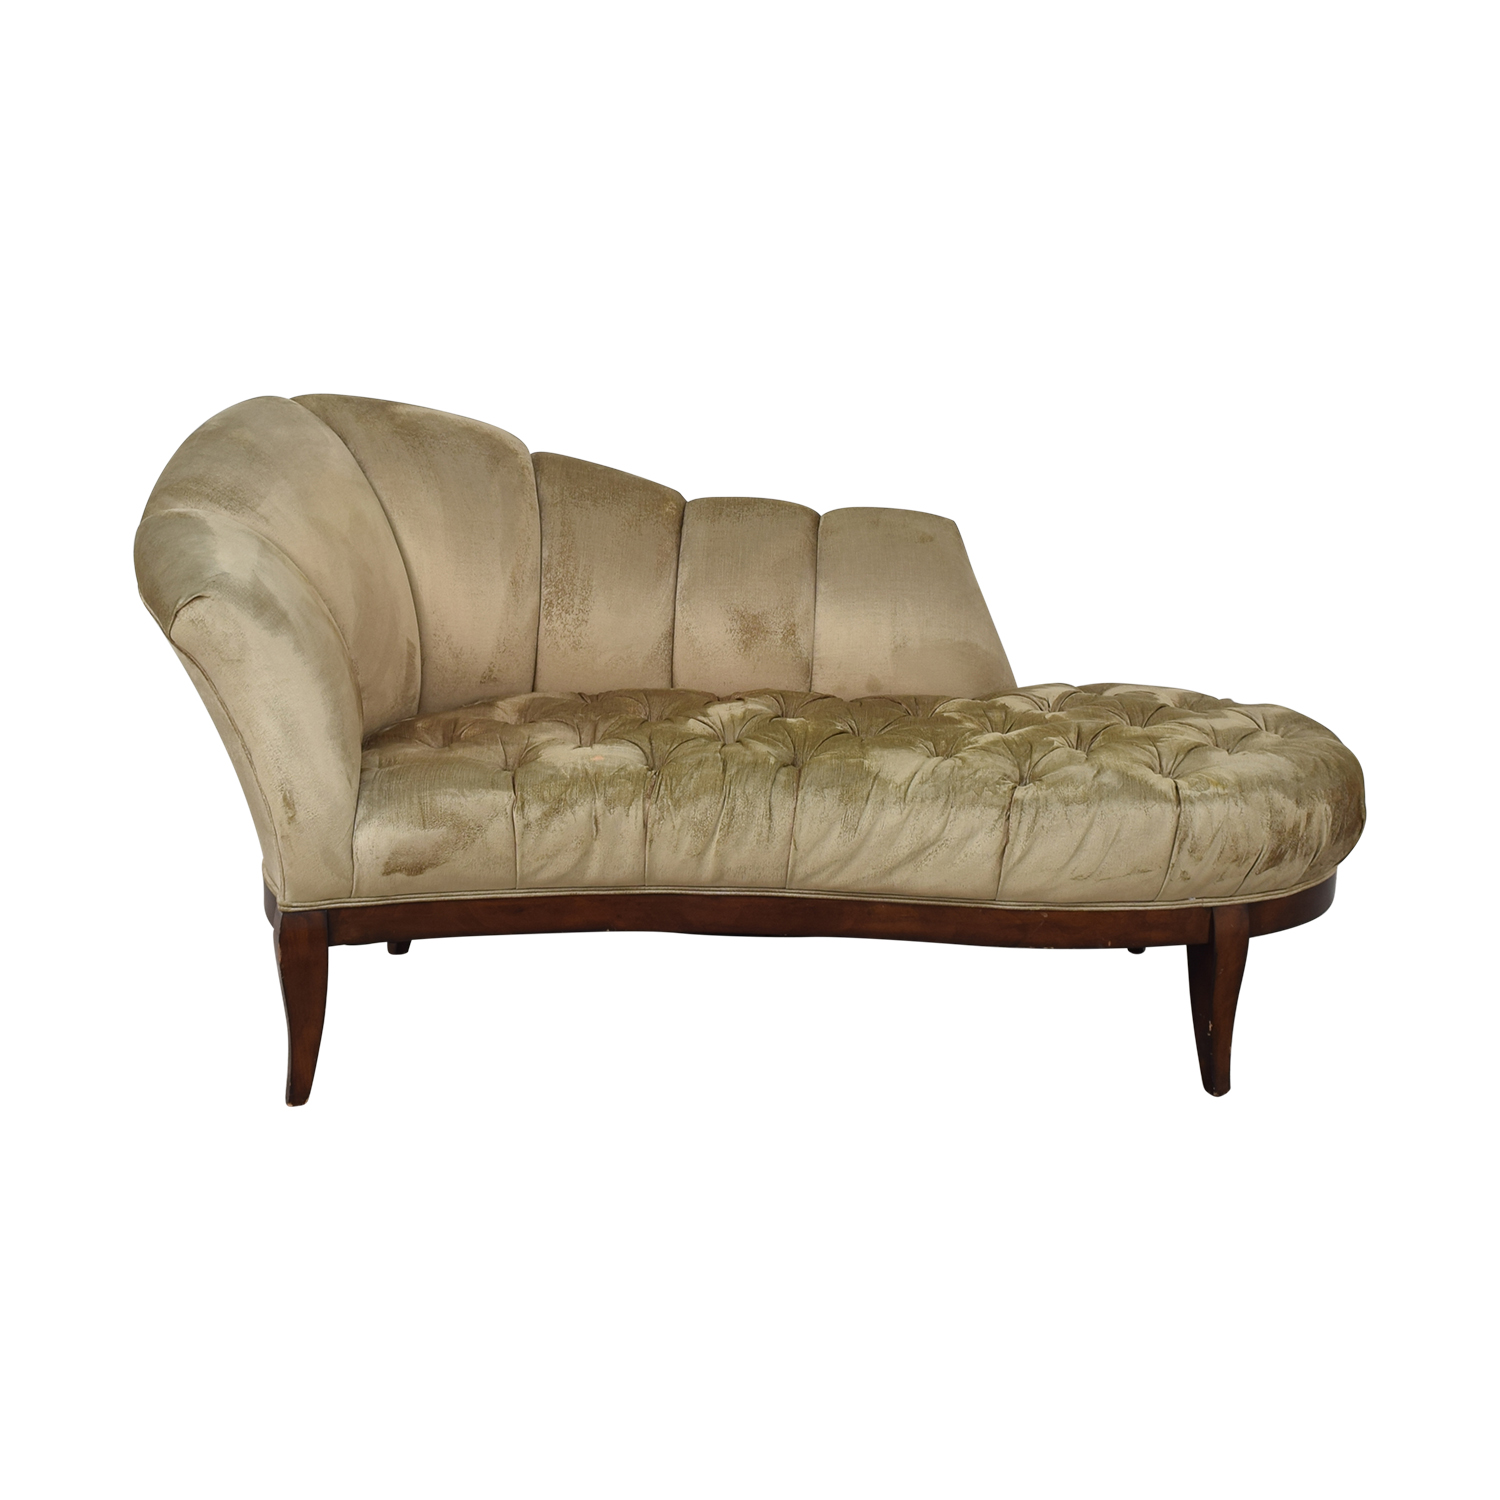 Schnadig Schnadig Pleated Tufted Traditional Chaise used